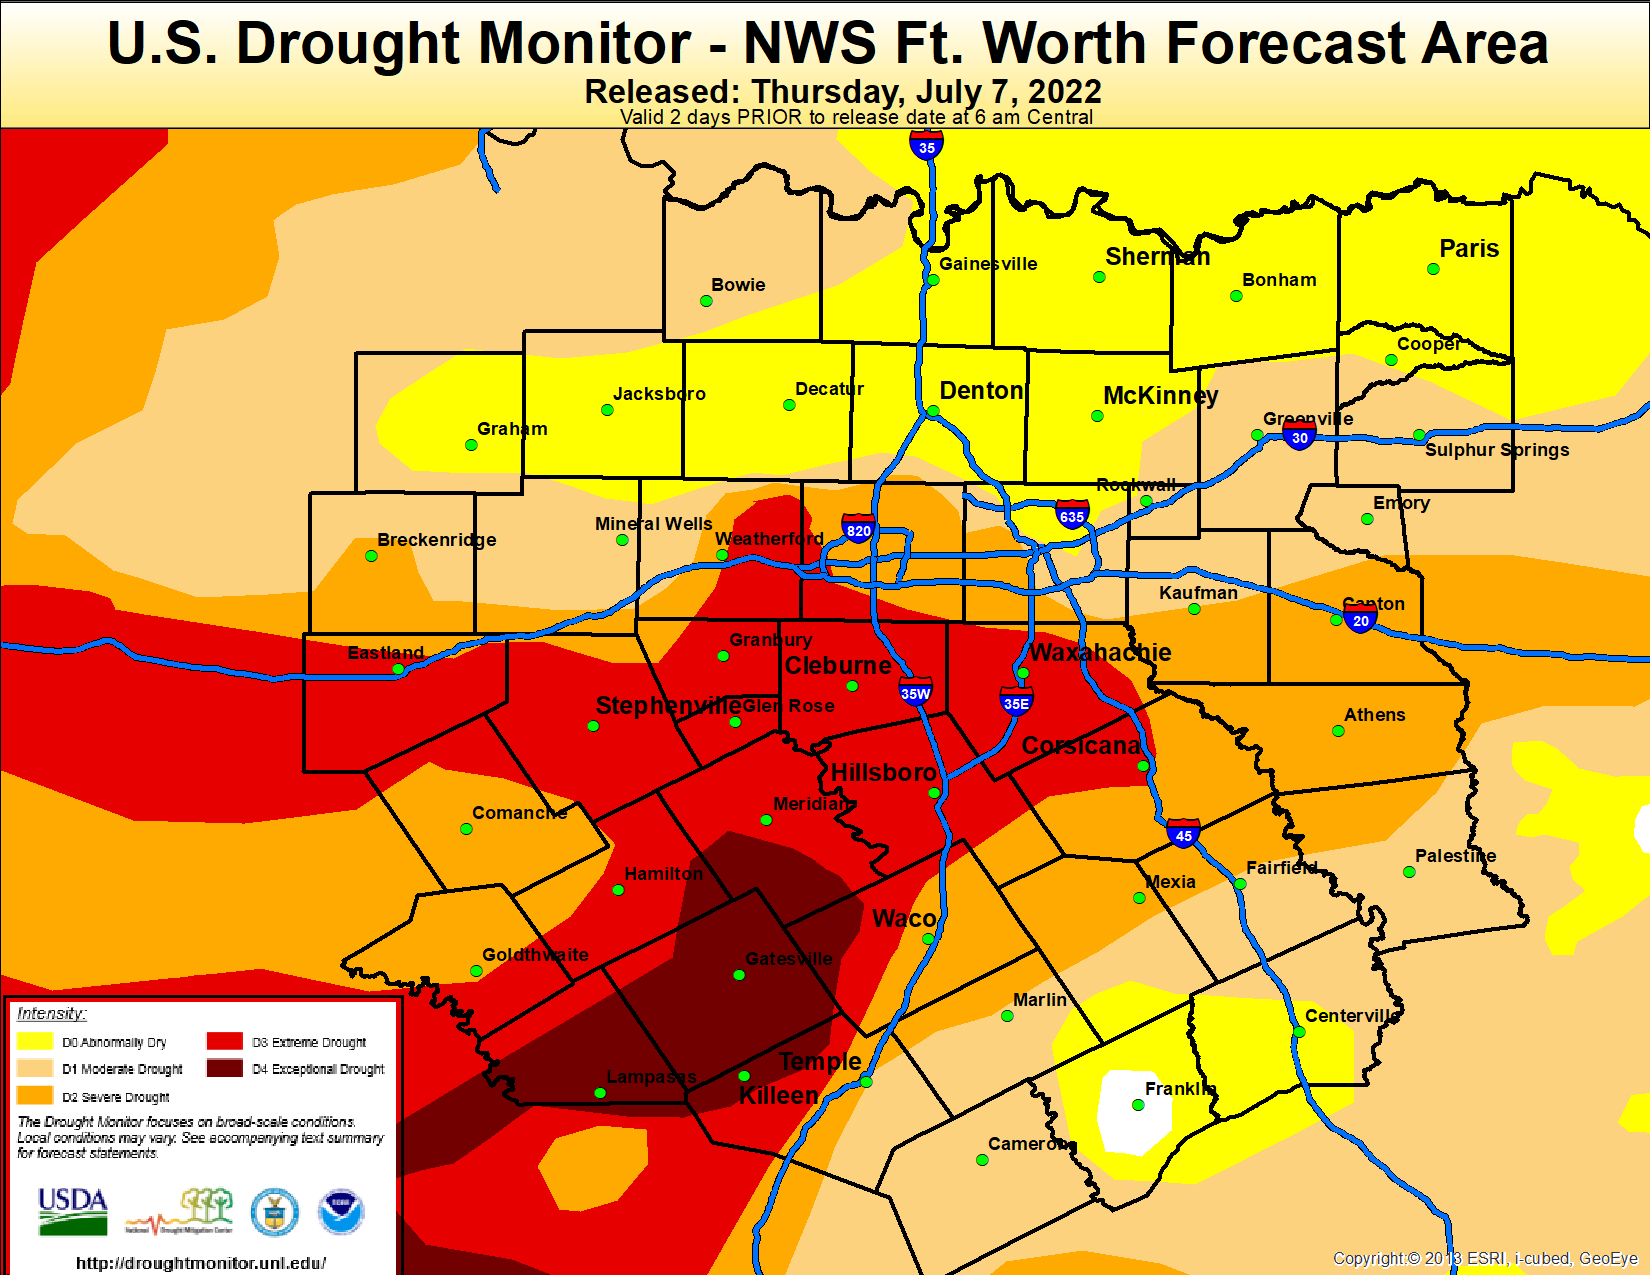 Drought Information on texas energy map, texas disease map, texas stream map, texas climate map, texas drainage map, texas coastal management map, the woodlands texas faultlines map, texas light map, texas cold front map, texas tsunami map, texas migration map, texas ozone map, texas fall color map, texas wildfires, texas highway 16 map, texas blizzard map, texas arizona new mexico map, plant native texas regions map, texas record cold map, texas air mass map,